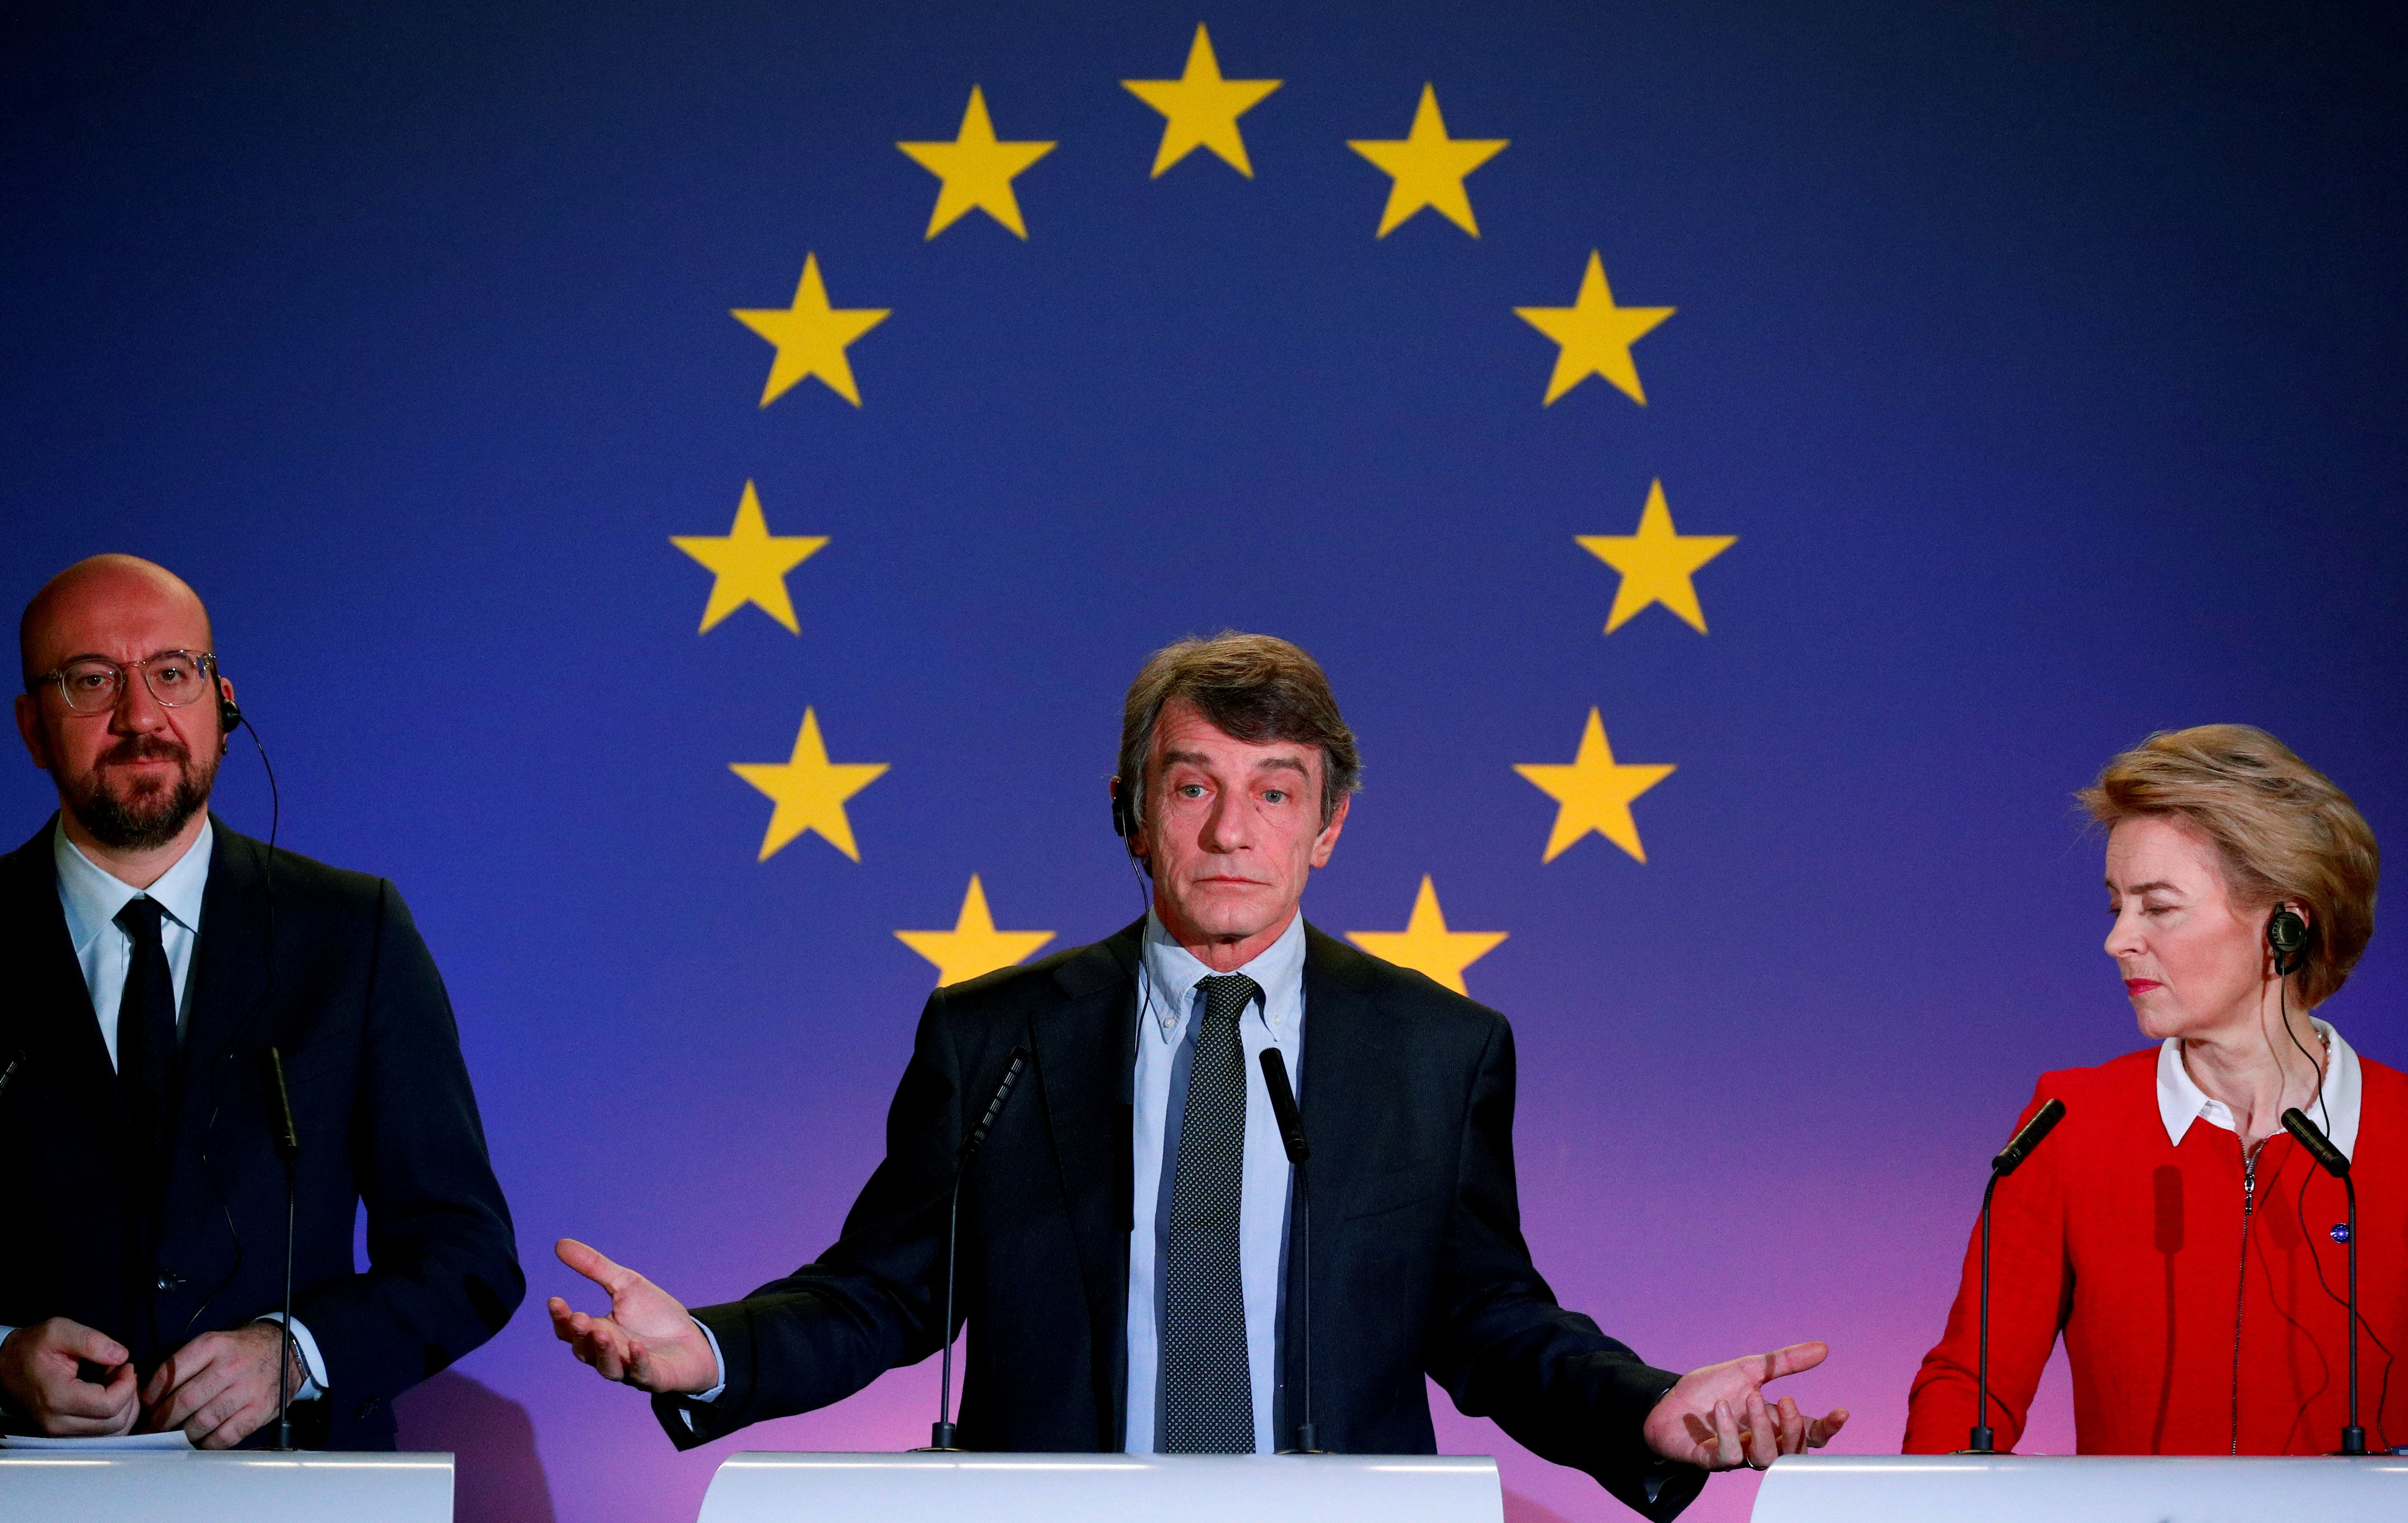 What We're Watching: EU accession, Nigerian visas, and a Hollywood legend's departure